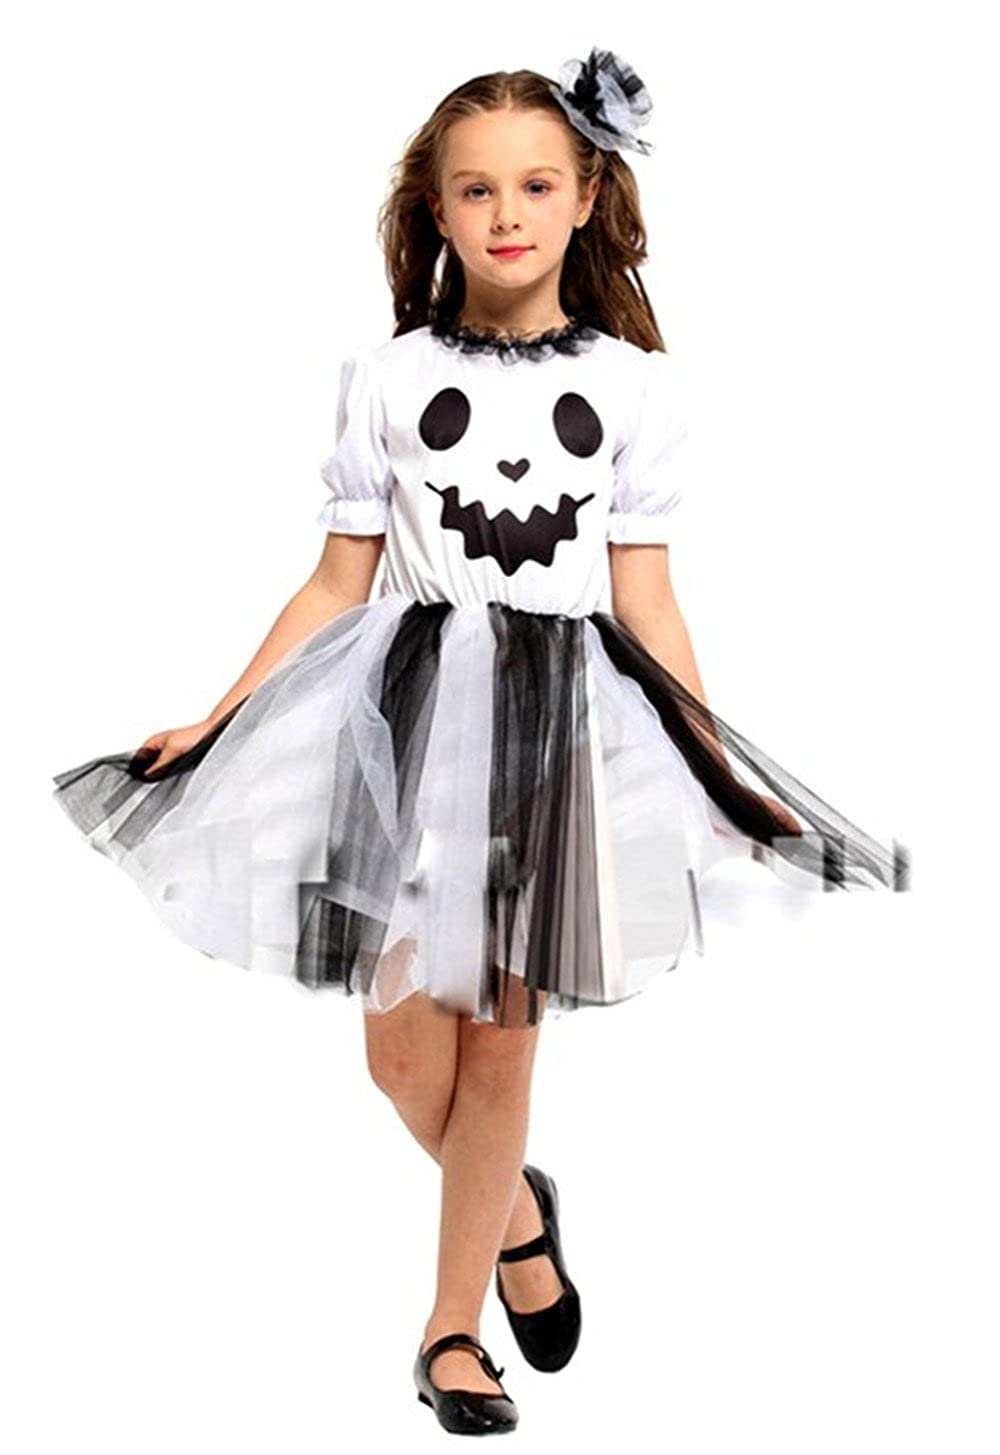 Seipe Girls Halloween Ghost Costume Set Cute Elf Outfits 2 Pieces Halloween Costumes